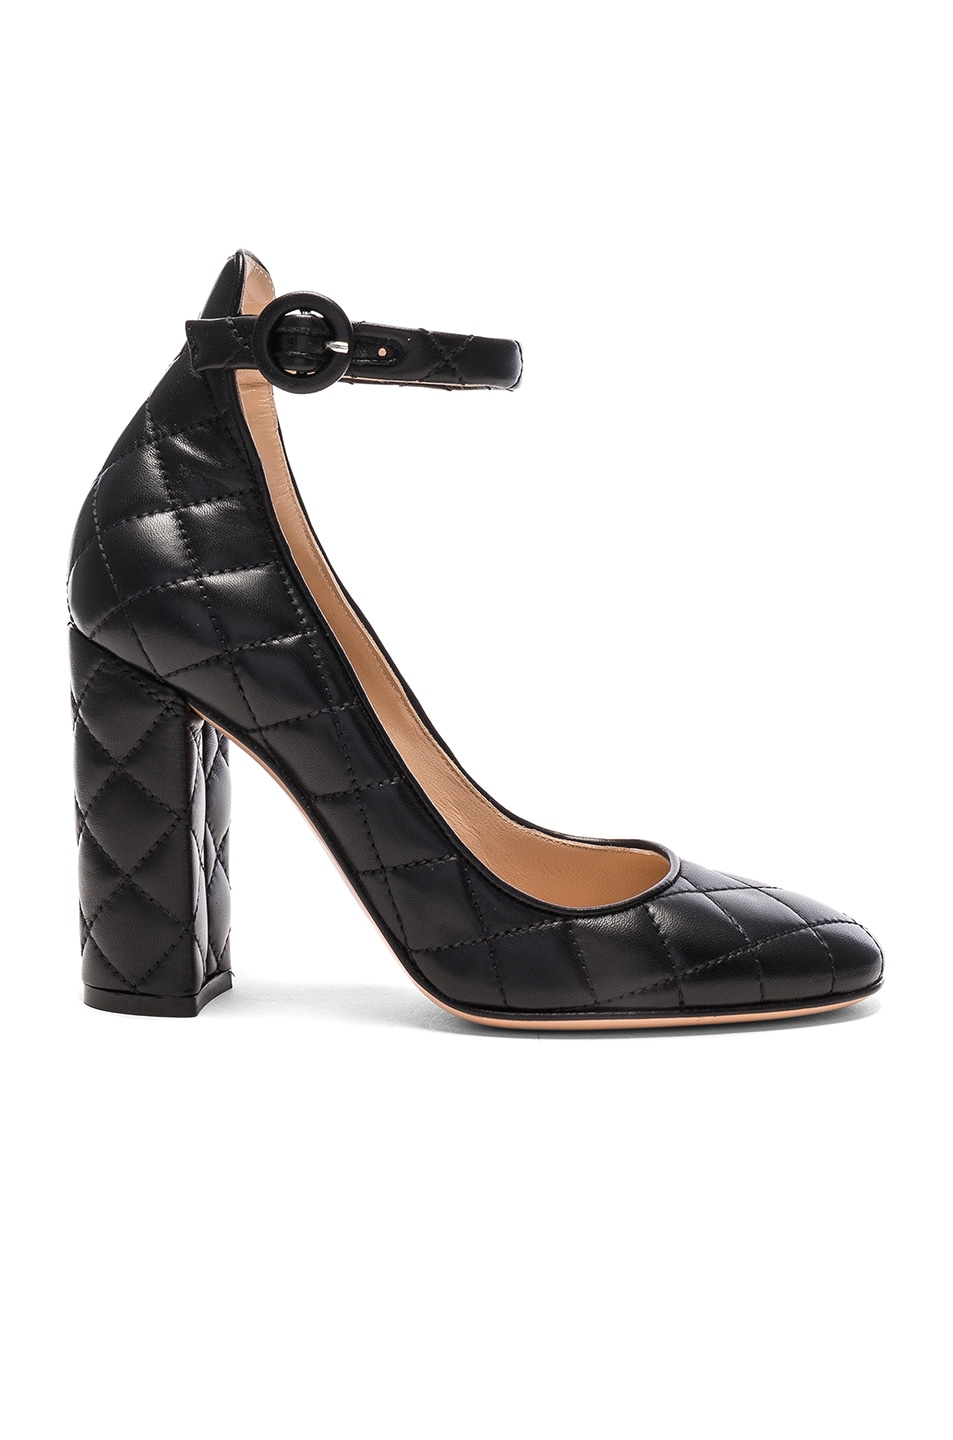 Image 1 of Gianvito Rossi Quilted Leather Heels in Black